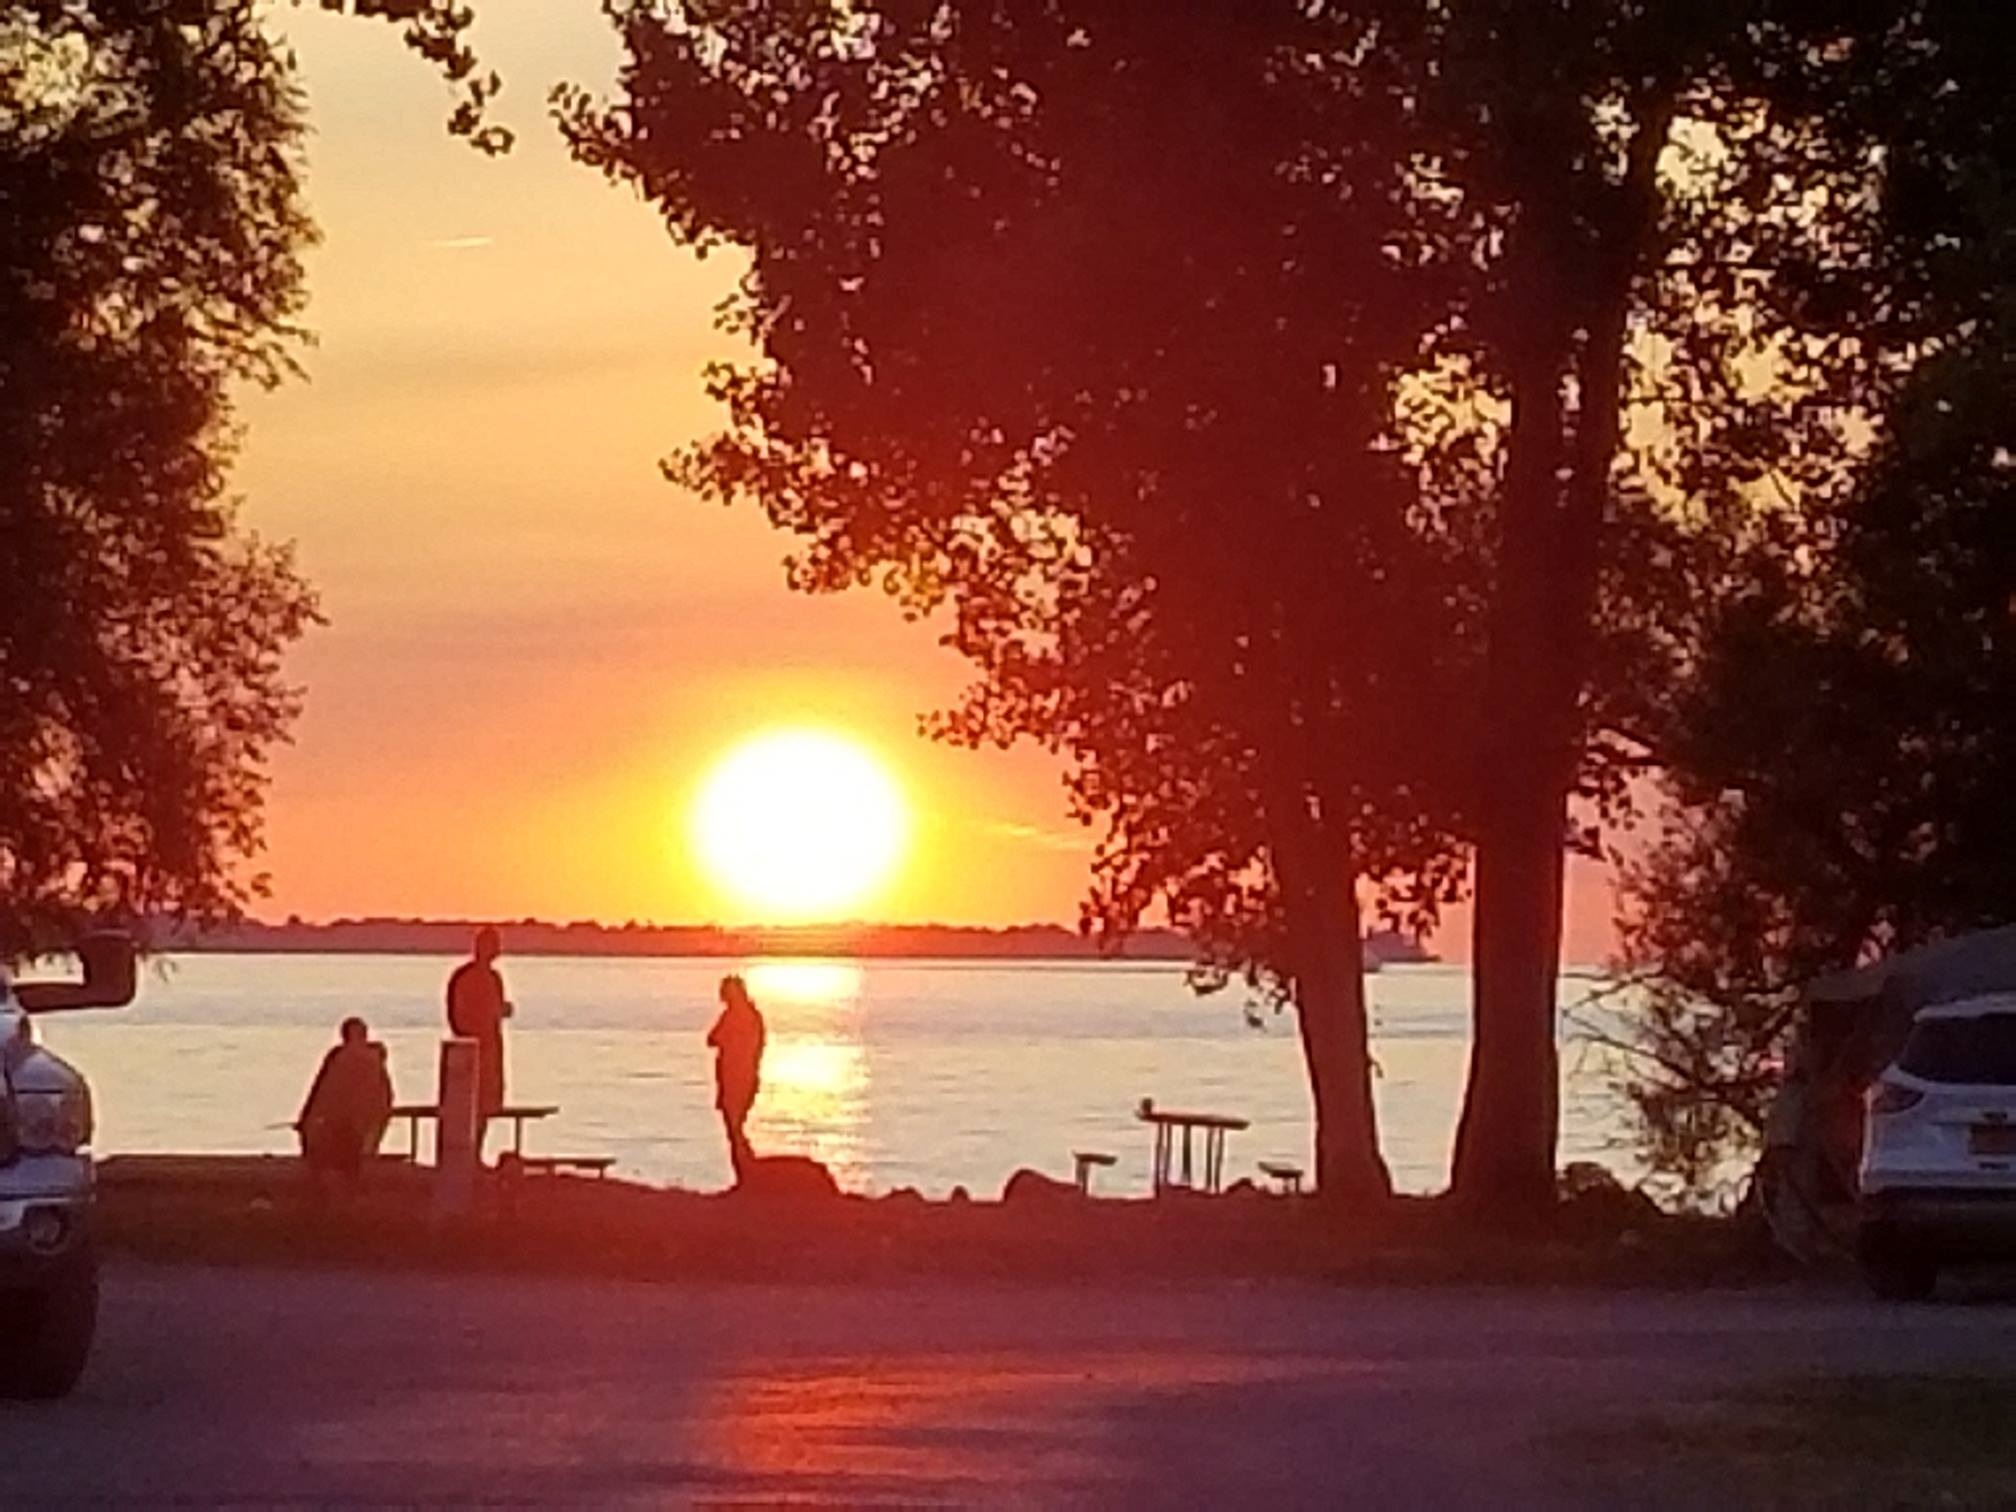 Sunset on Association Island Campground